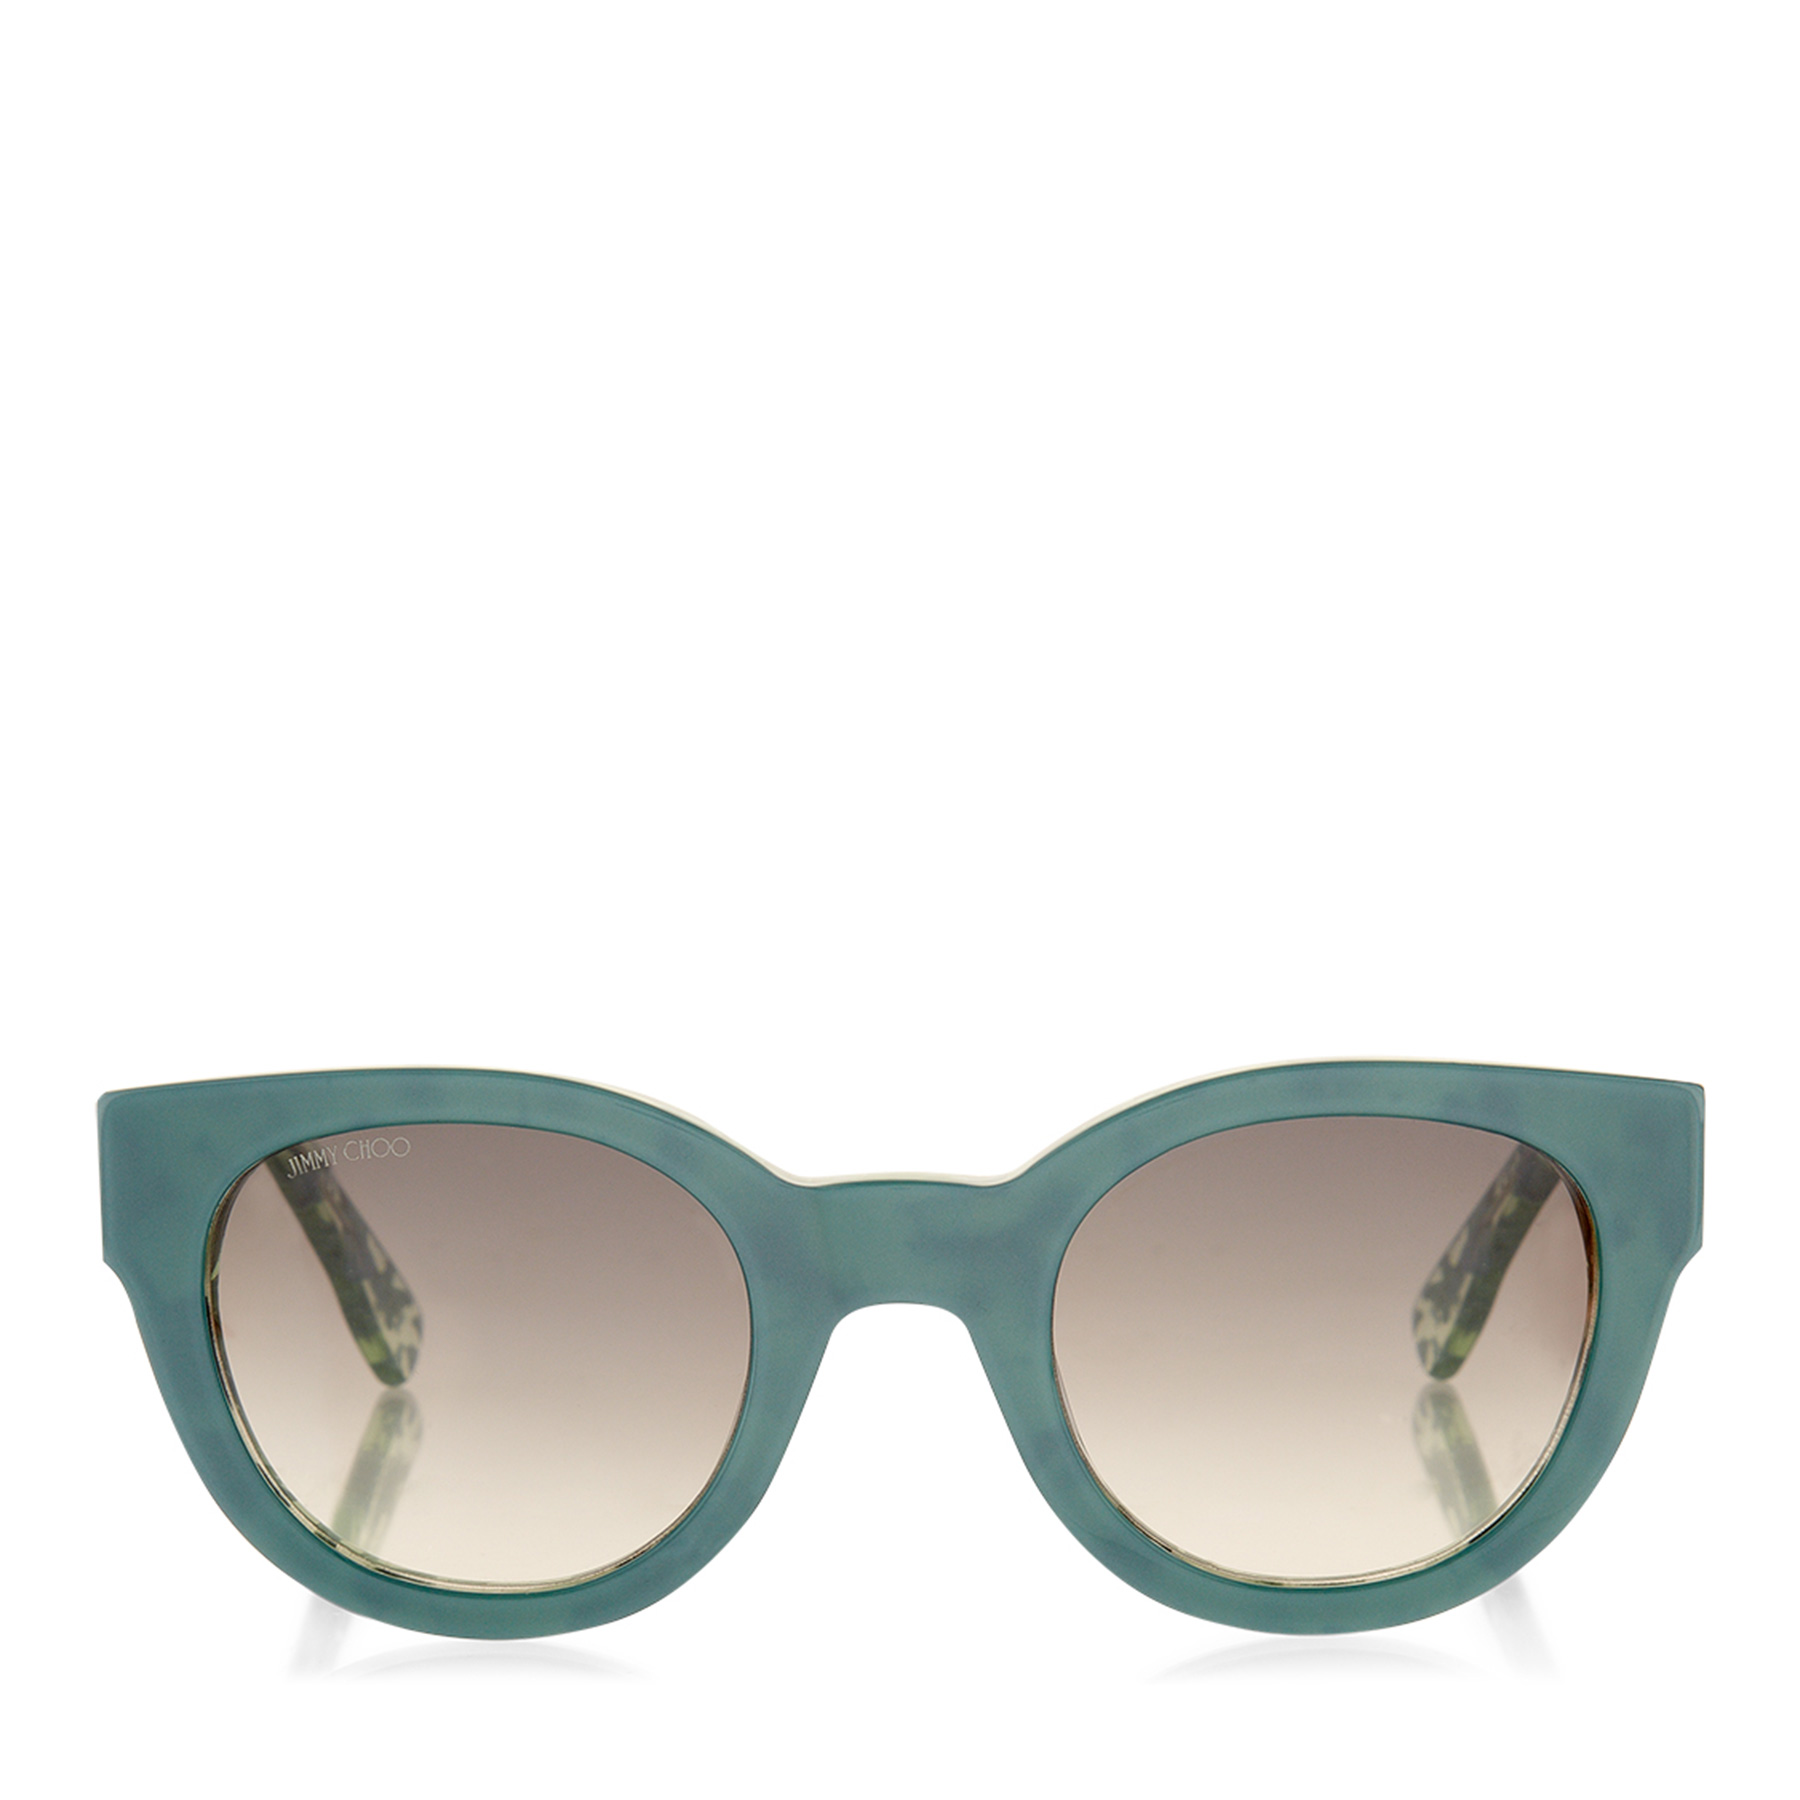 EDA/S Green Acetate Round Frame Sunglasses with Leaf Effect